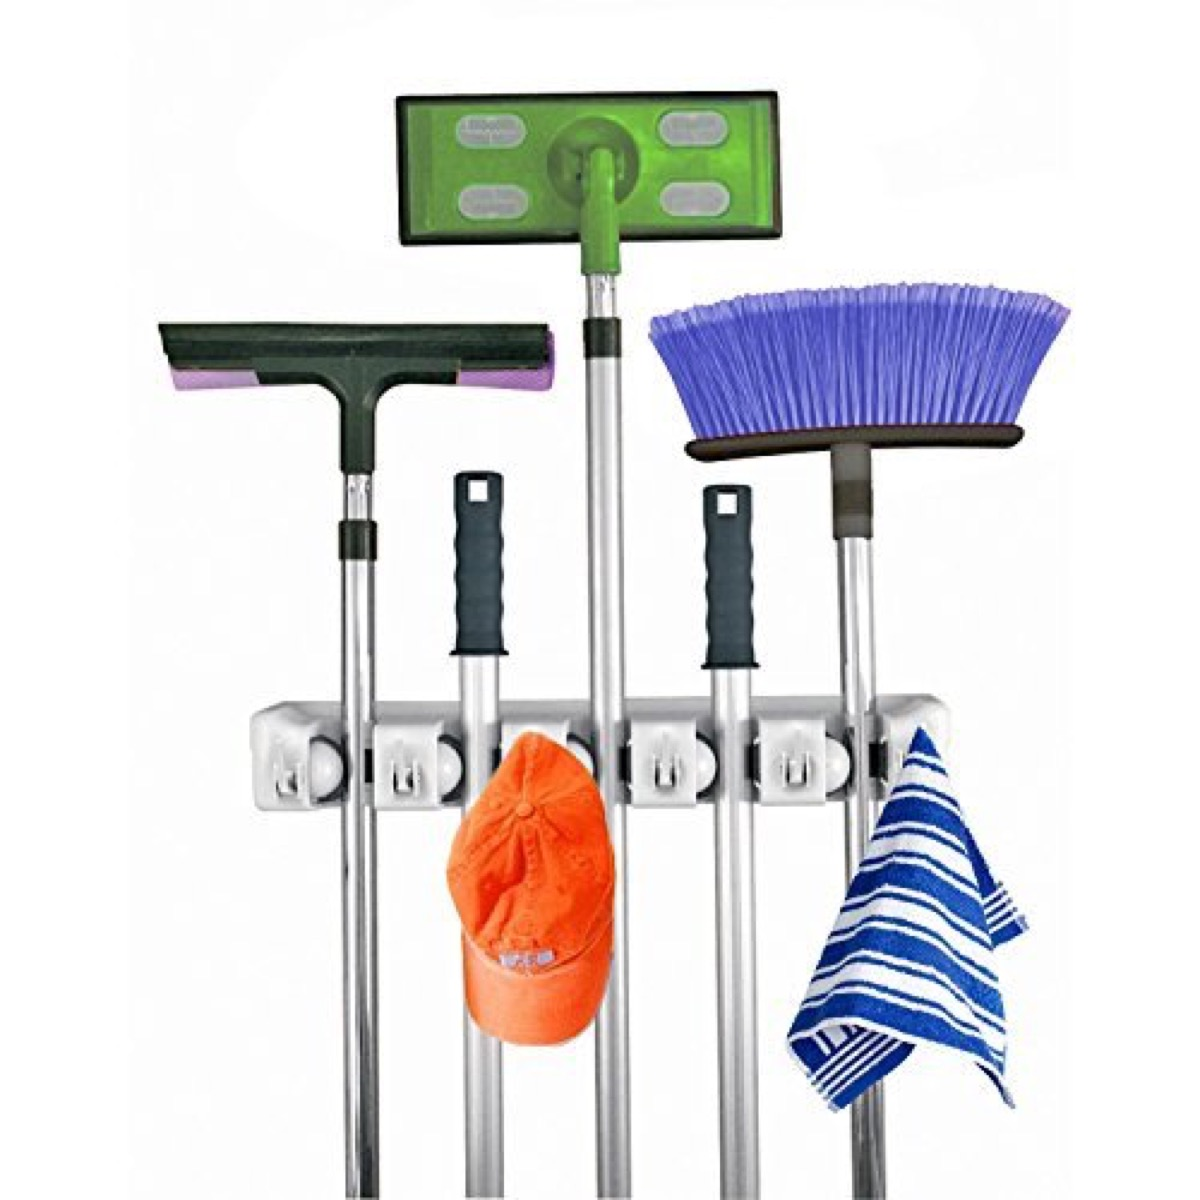 Cleaning Tools Holder {Organizational Products on Amazon}